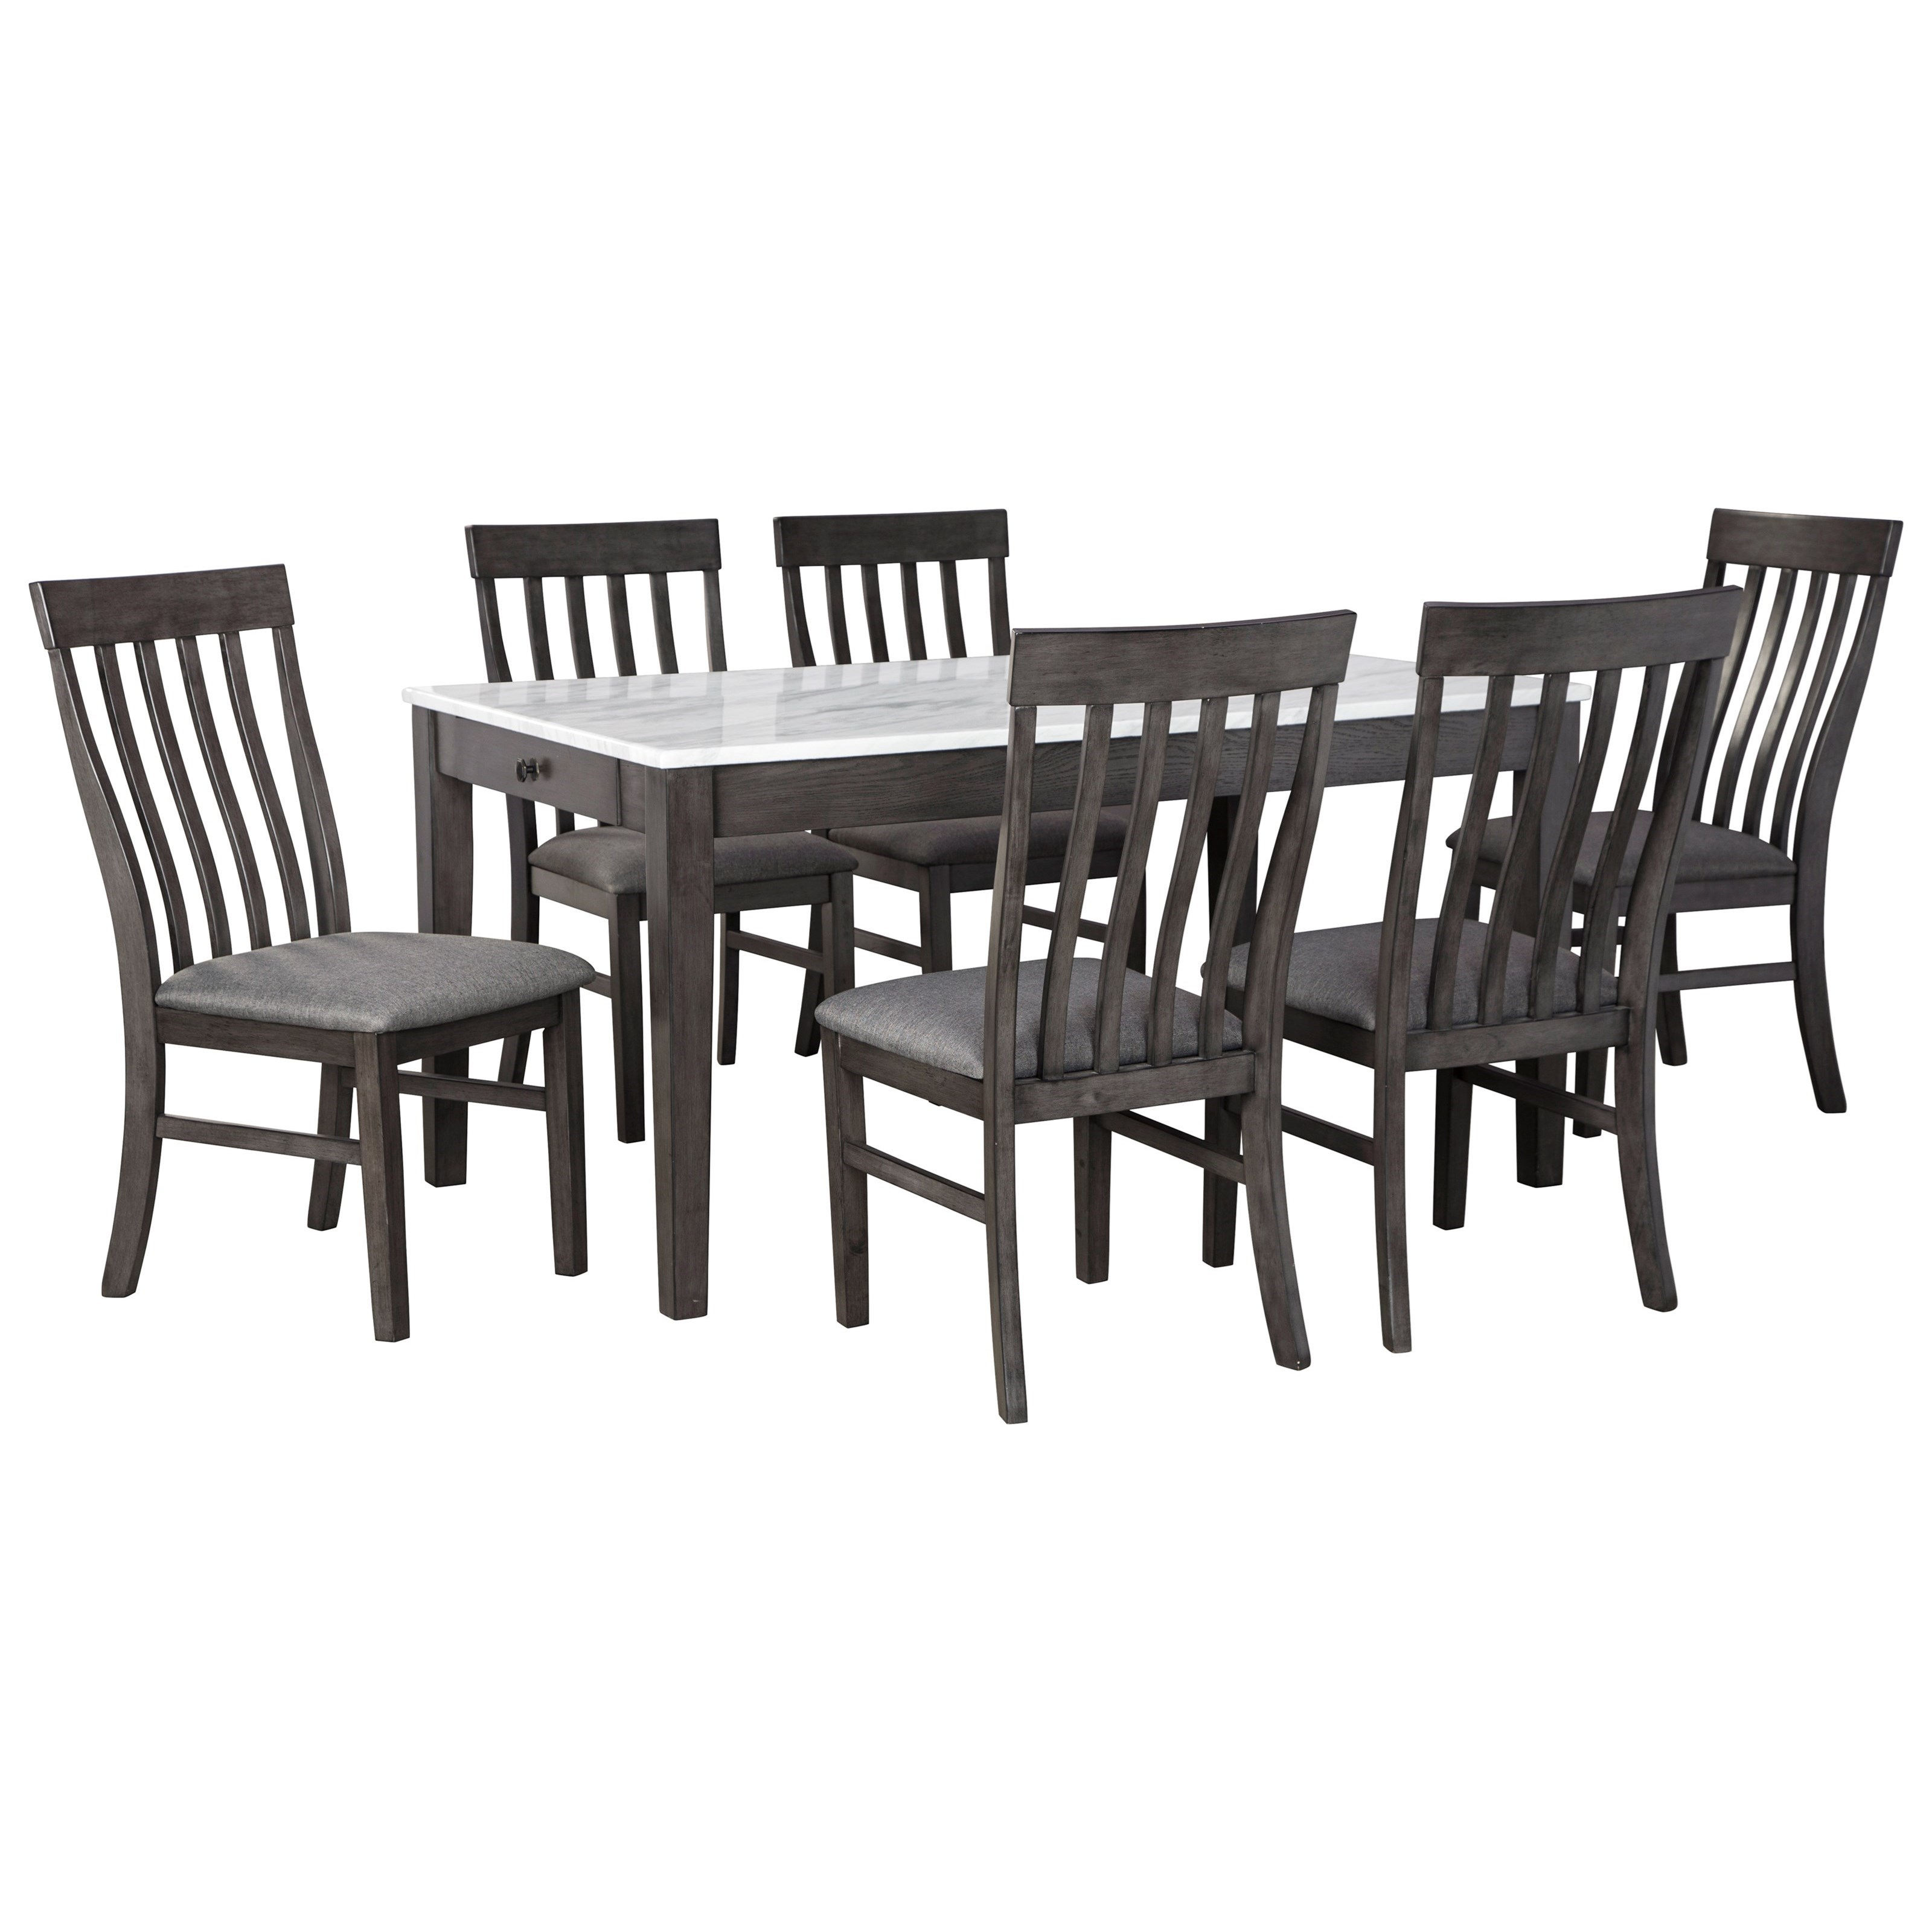 Luvoni 7-Piece Dining Set by Benchcraft at HomeWorld Furniture